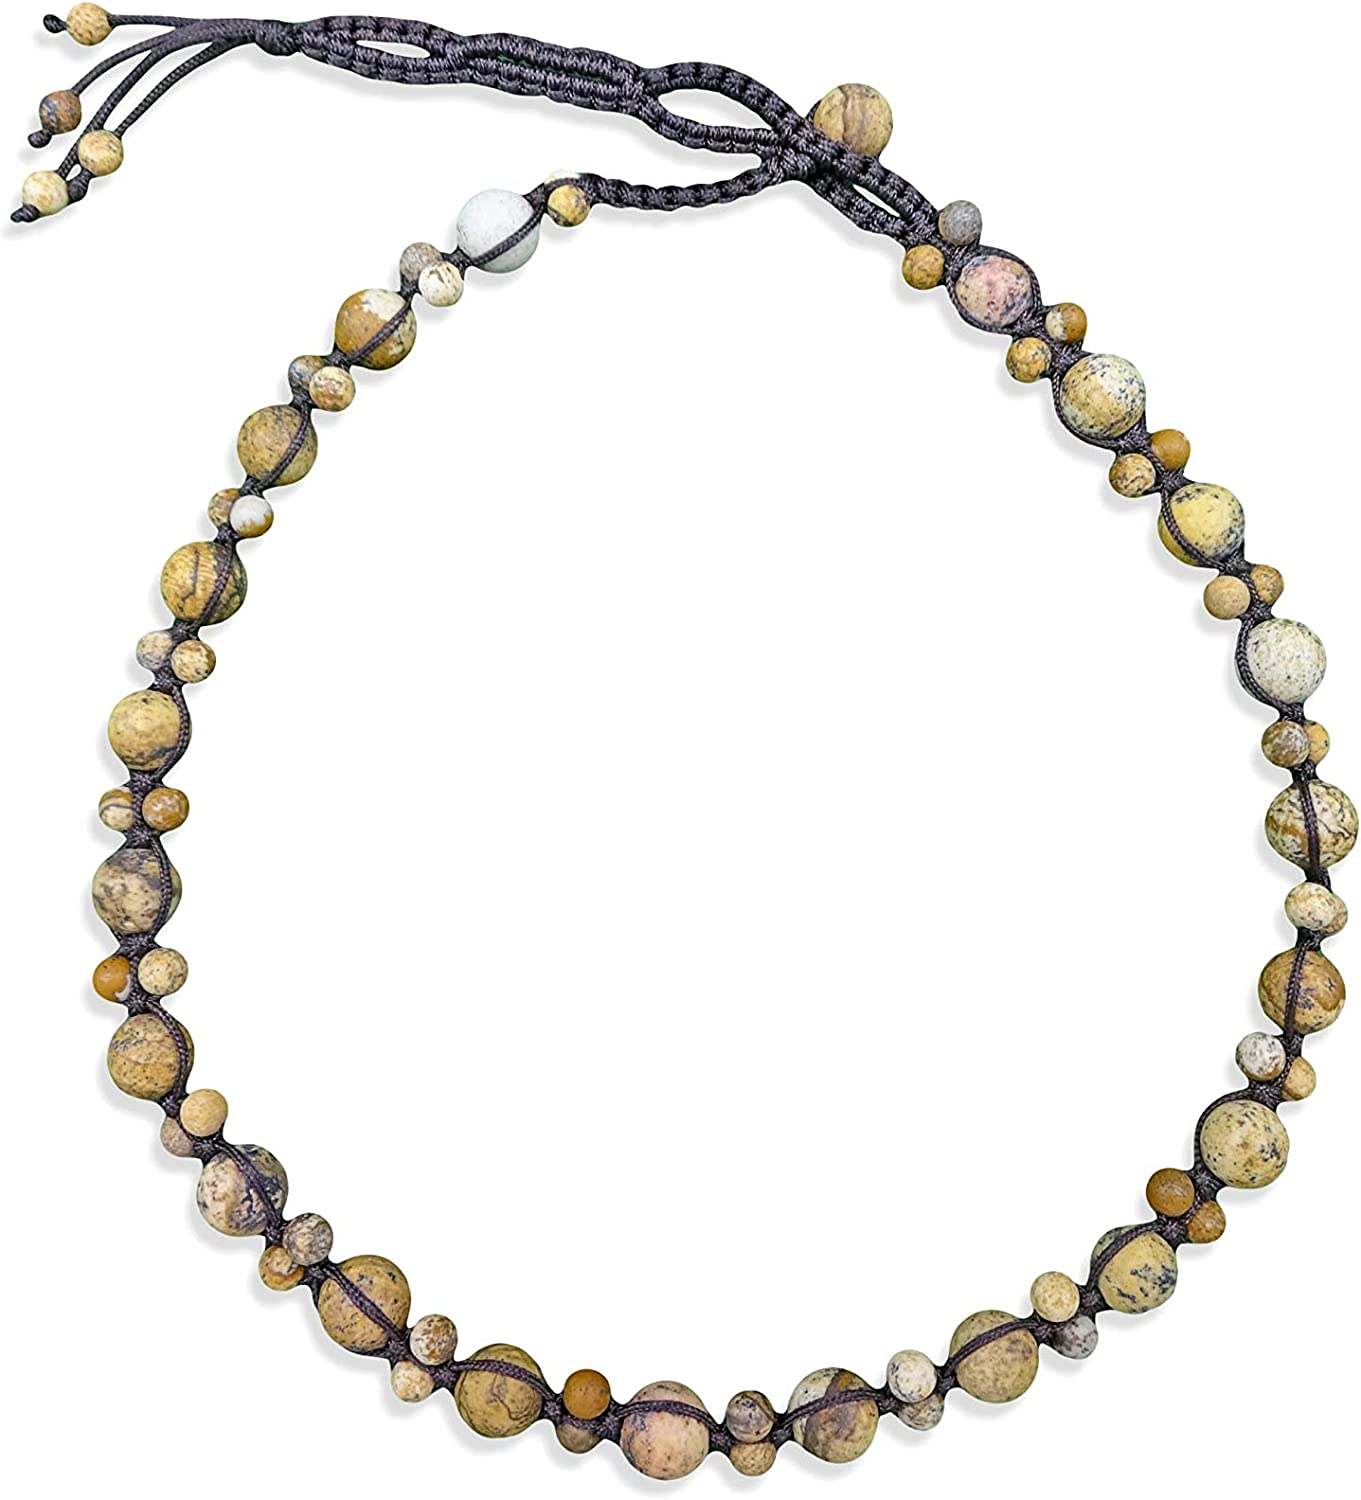 Shell One of a Kind Hand Braided Semi Precious Stones and Turquoise Beaded Necklace with Pearls